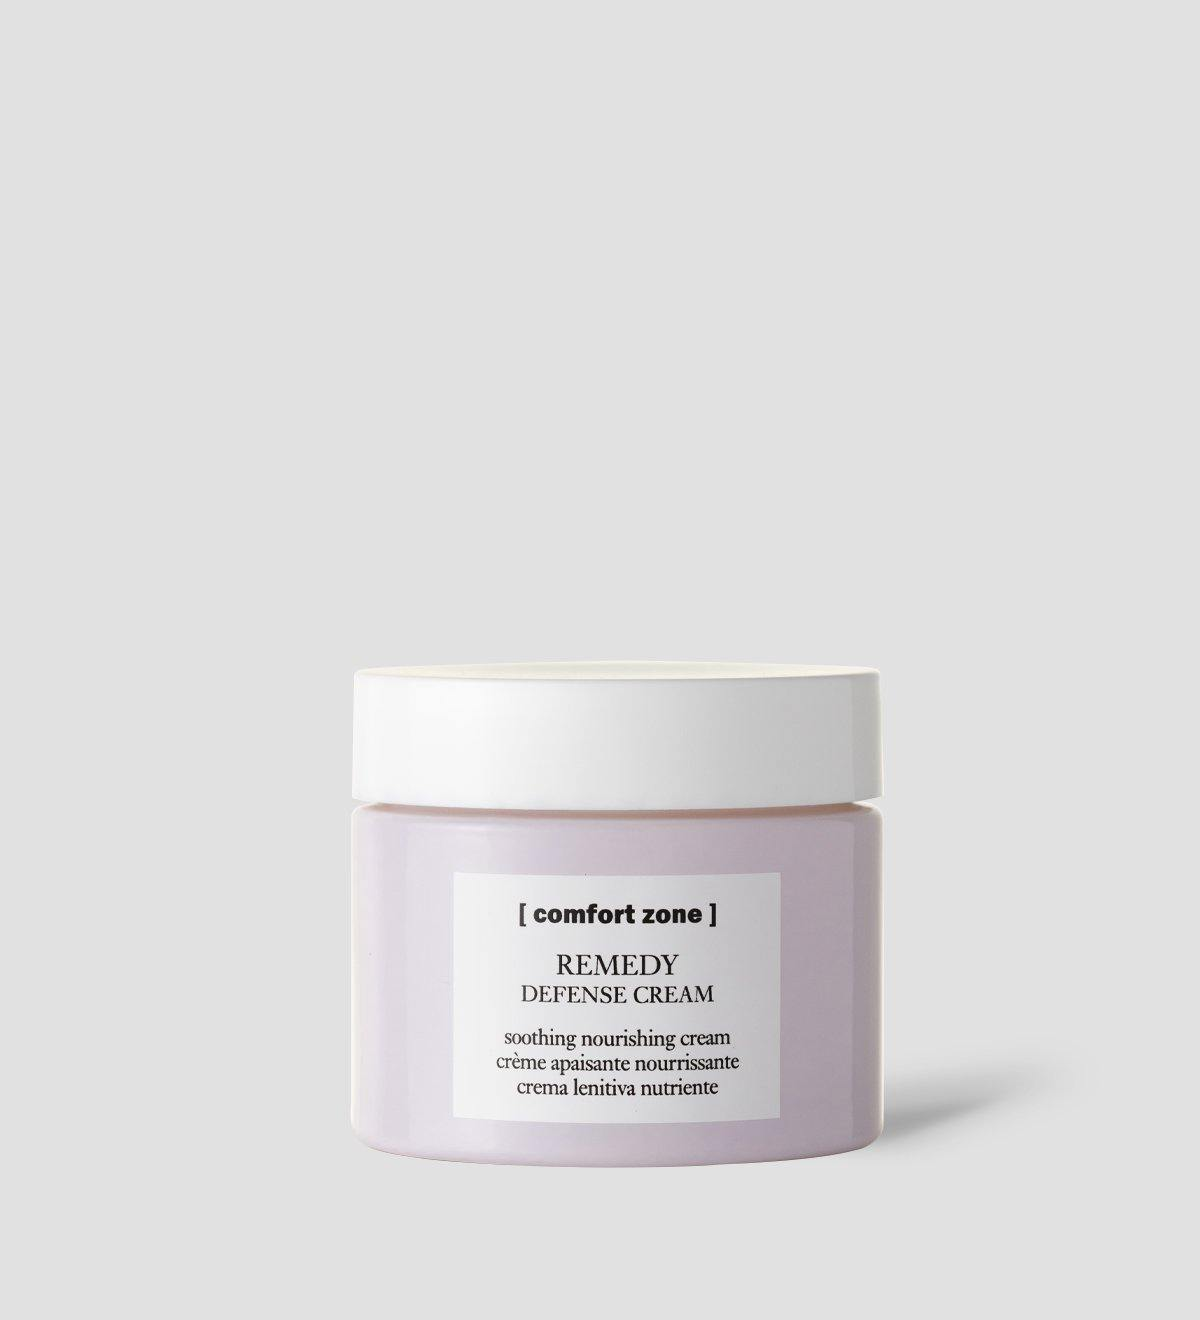 REMEDY DEFENSE CREAM - Estetica Elisir Desenzano